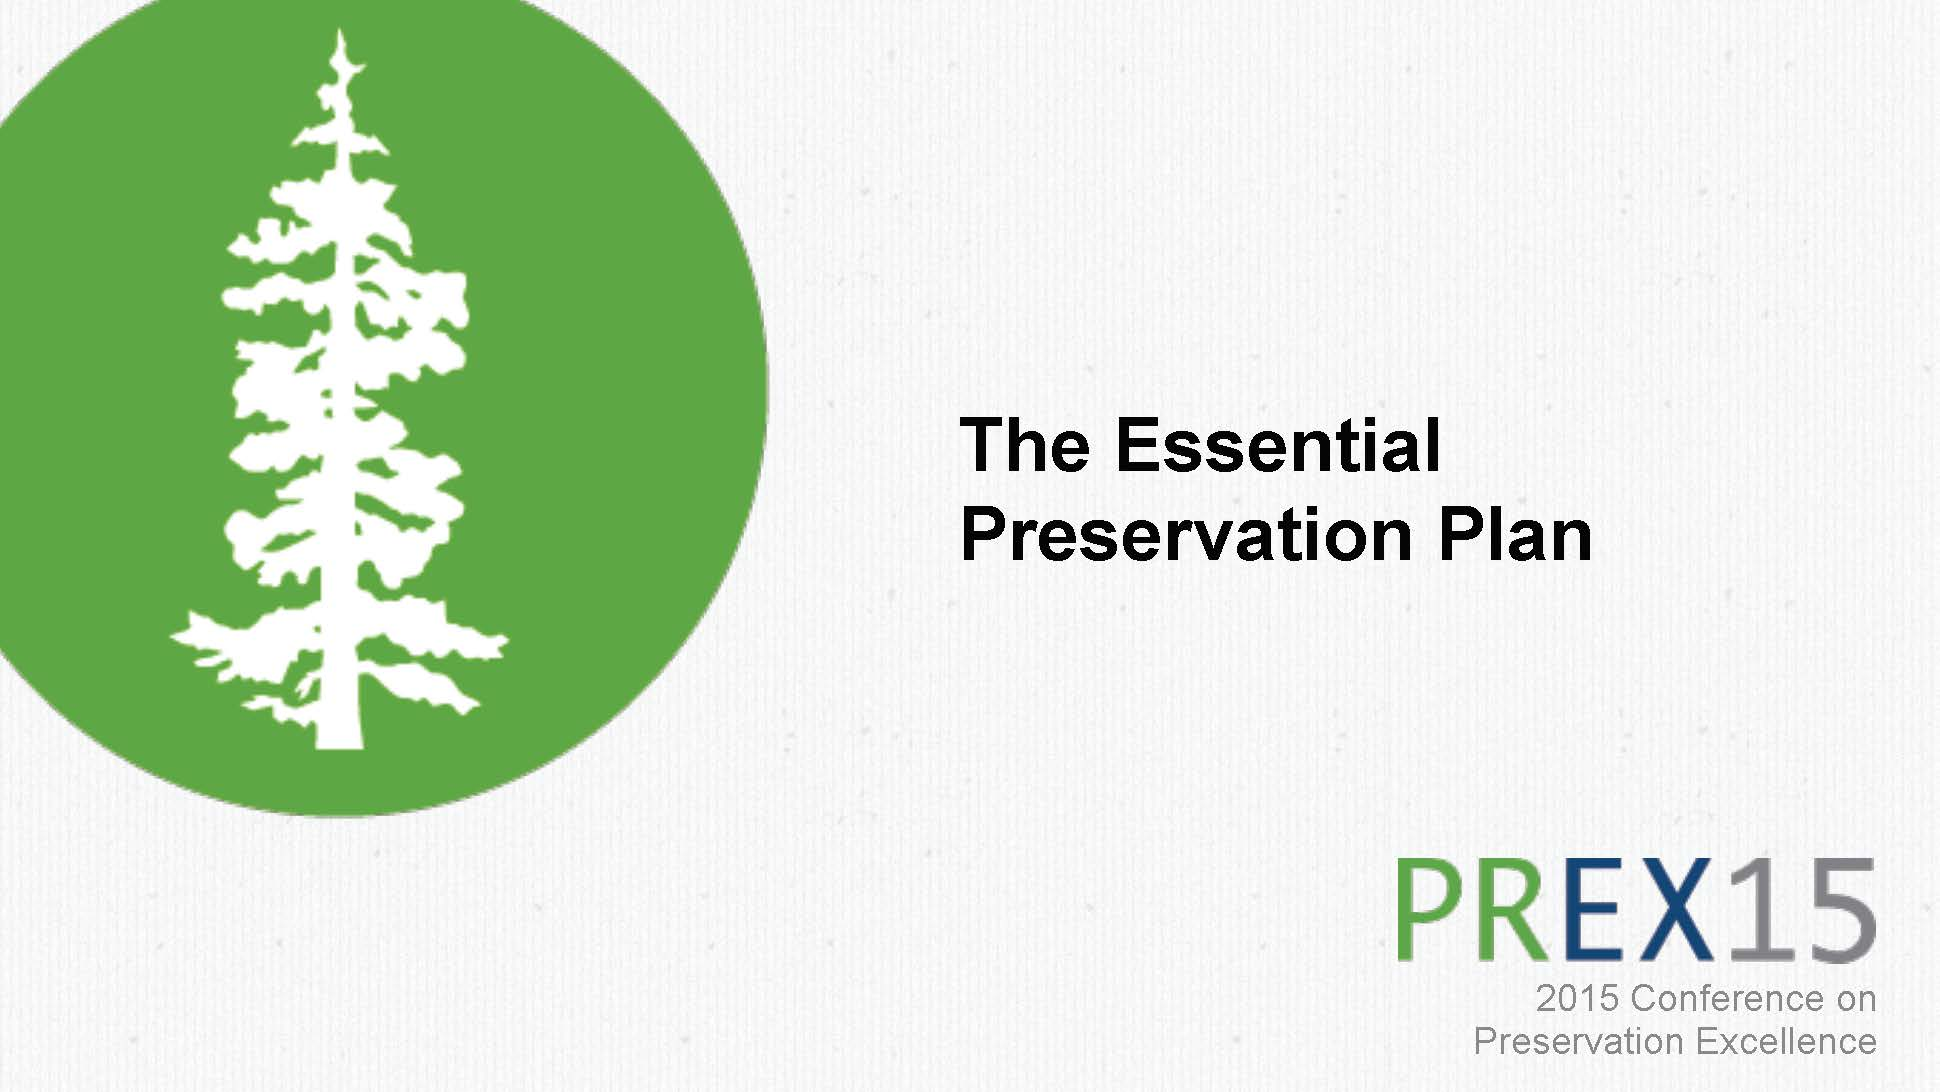 Session 3A: The Essential Preservation Plan